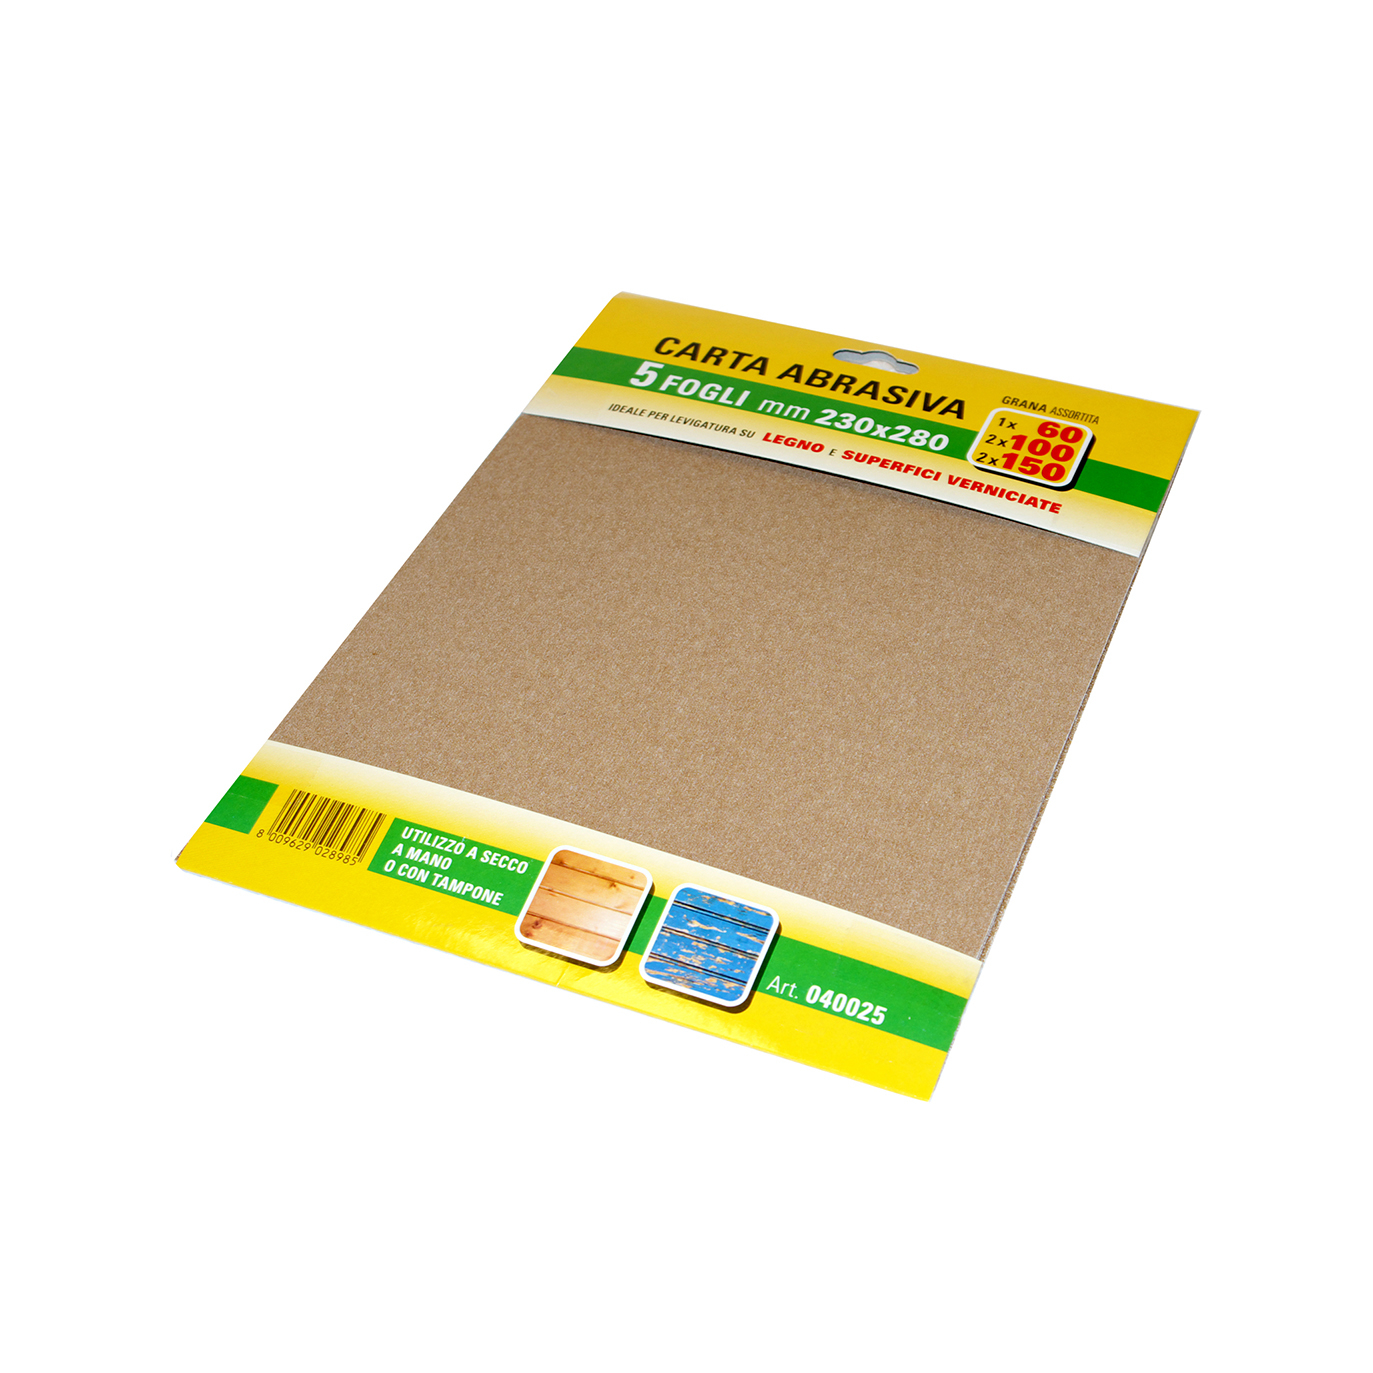 CARTA  ABR ASS PROMO  230X280 PZ 5